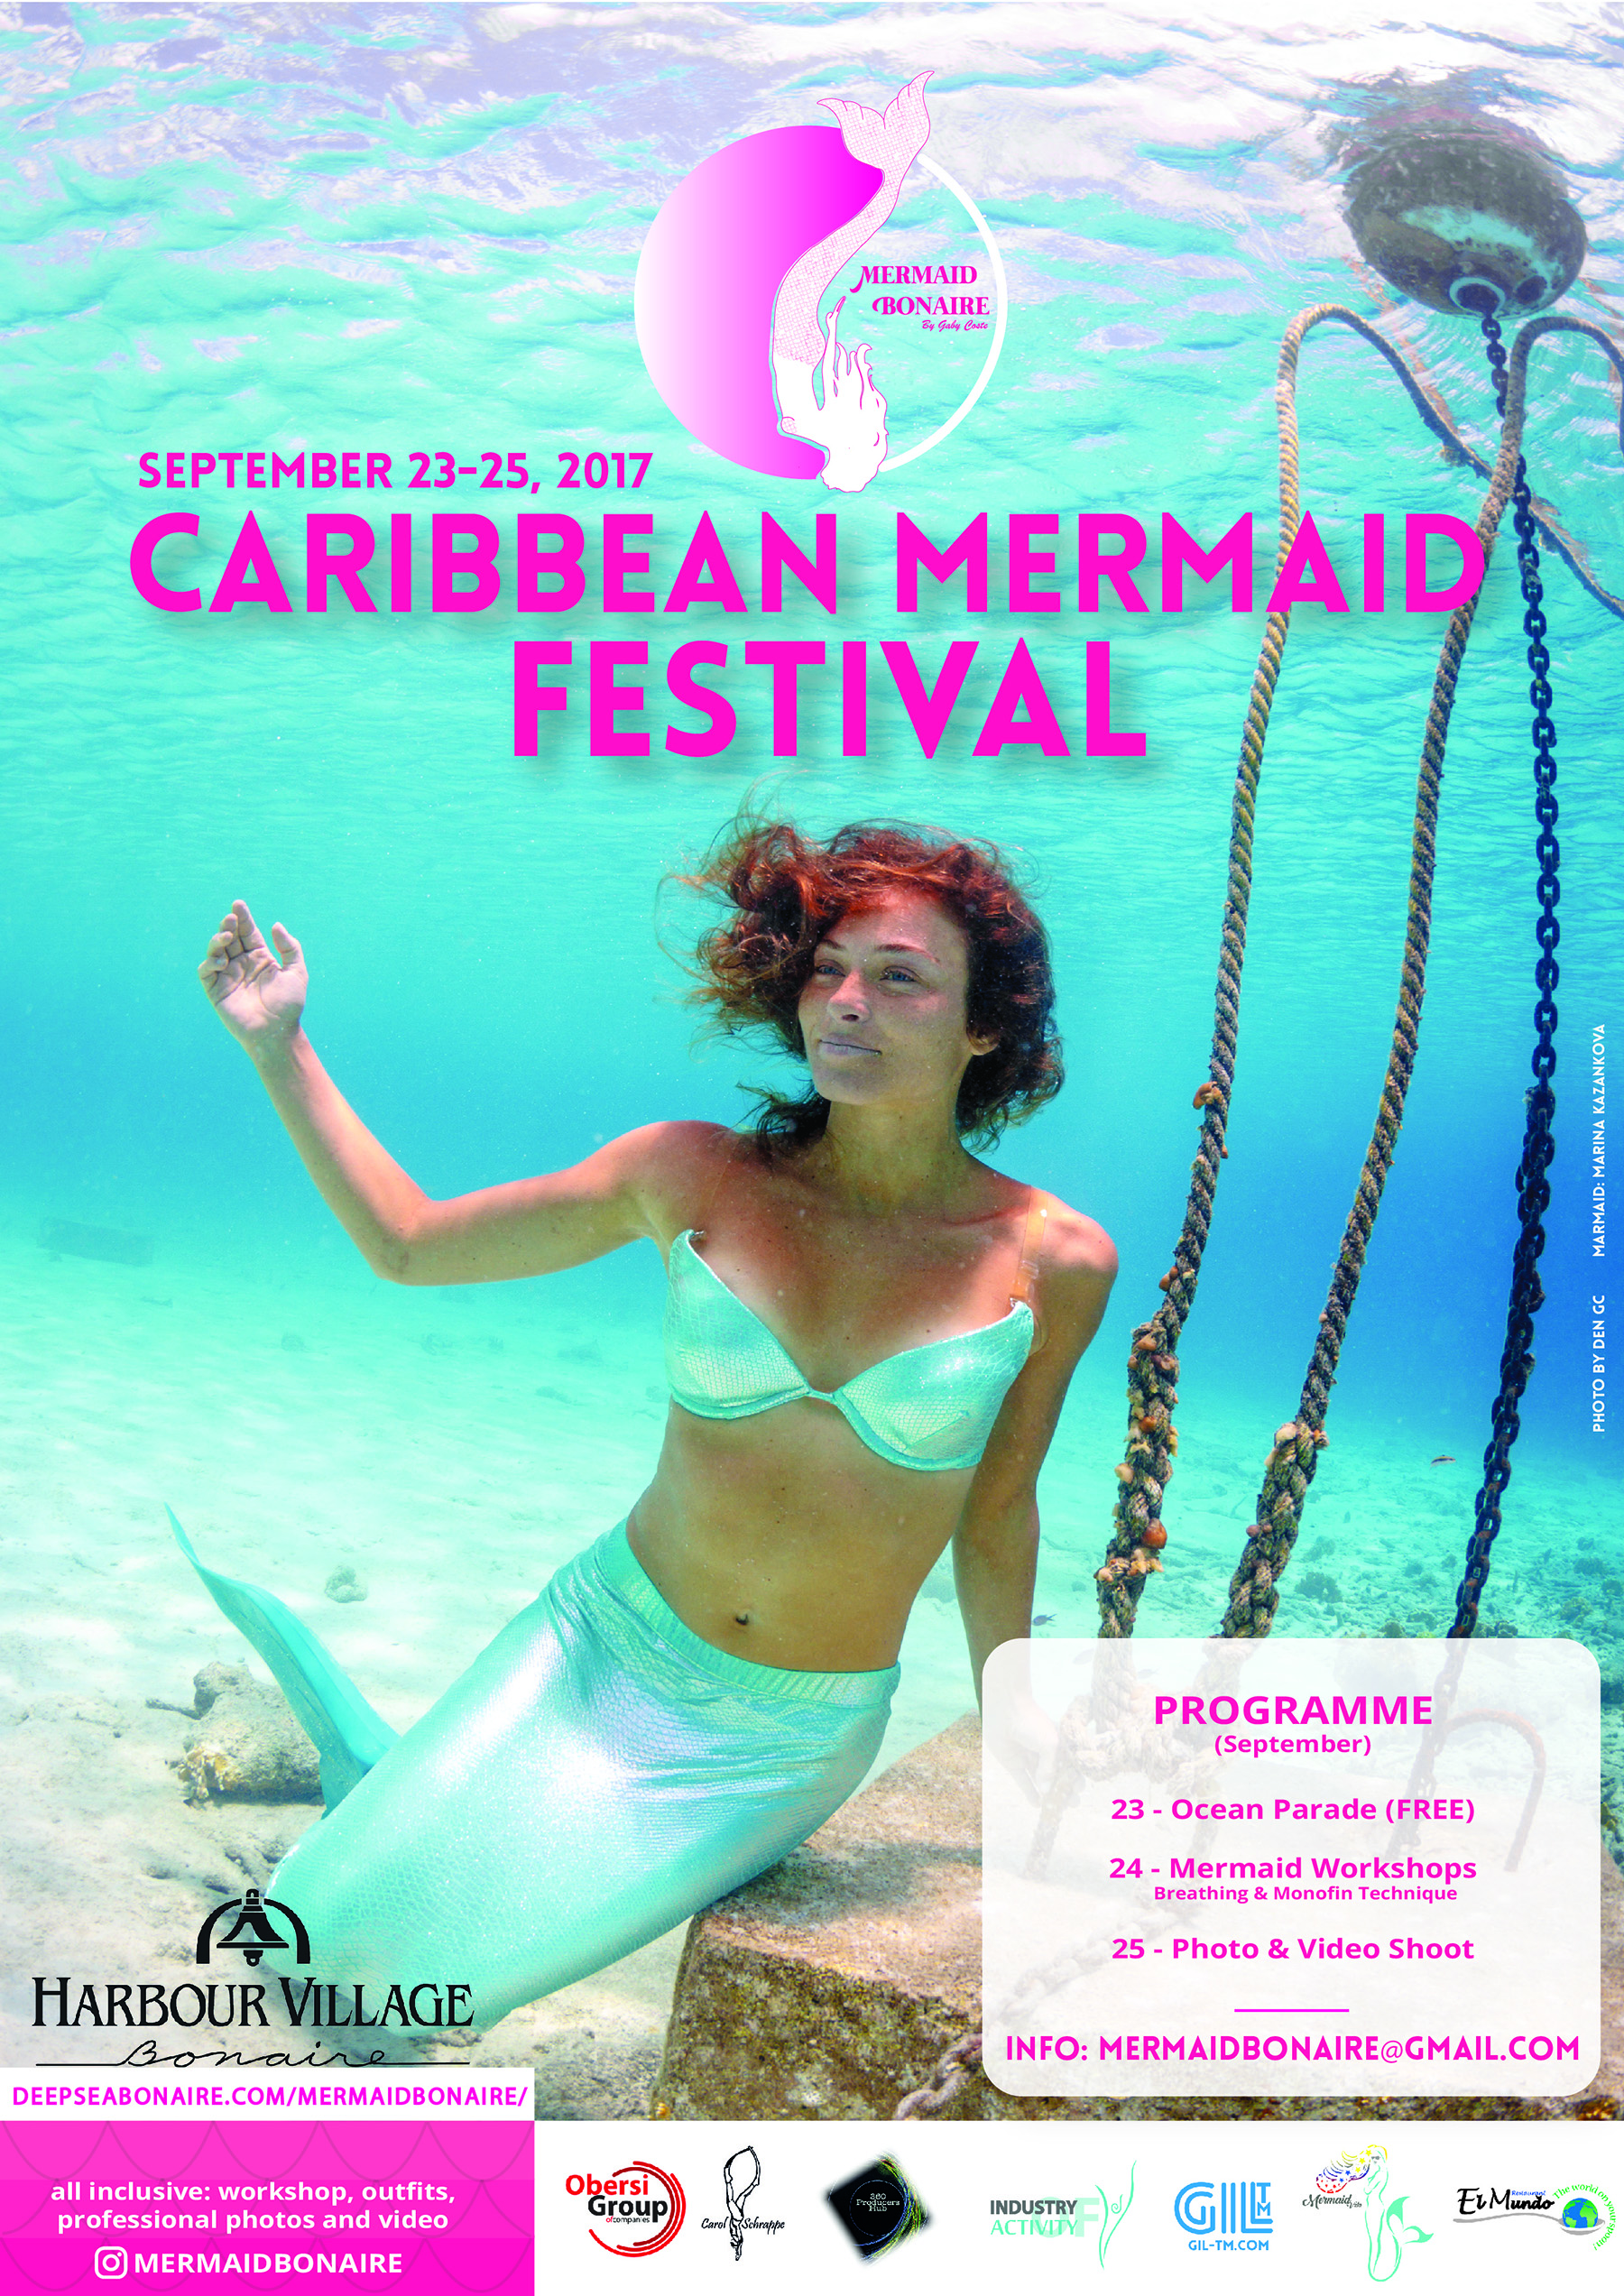 A Caribbean Mermaid Festival will take place September 24th - 25th in Bonaire.